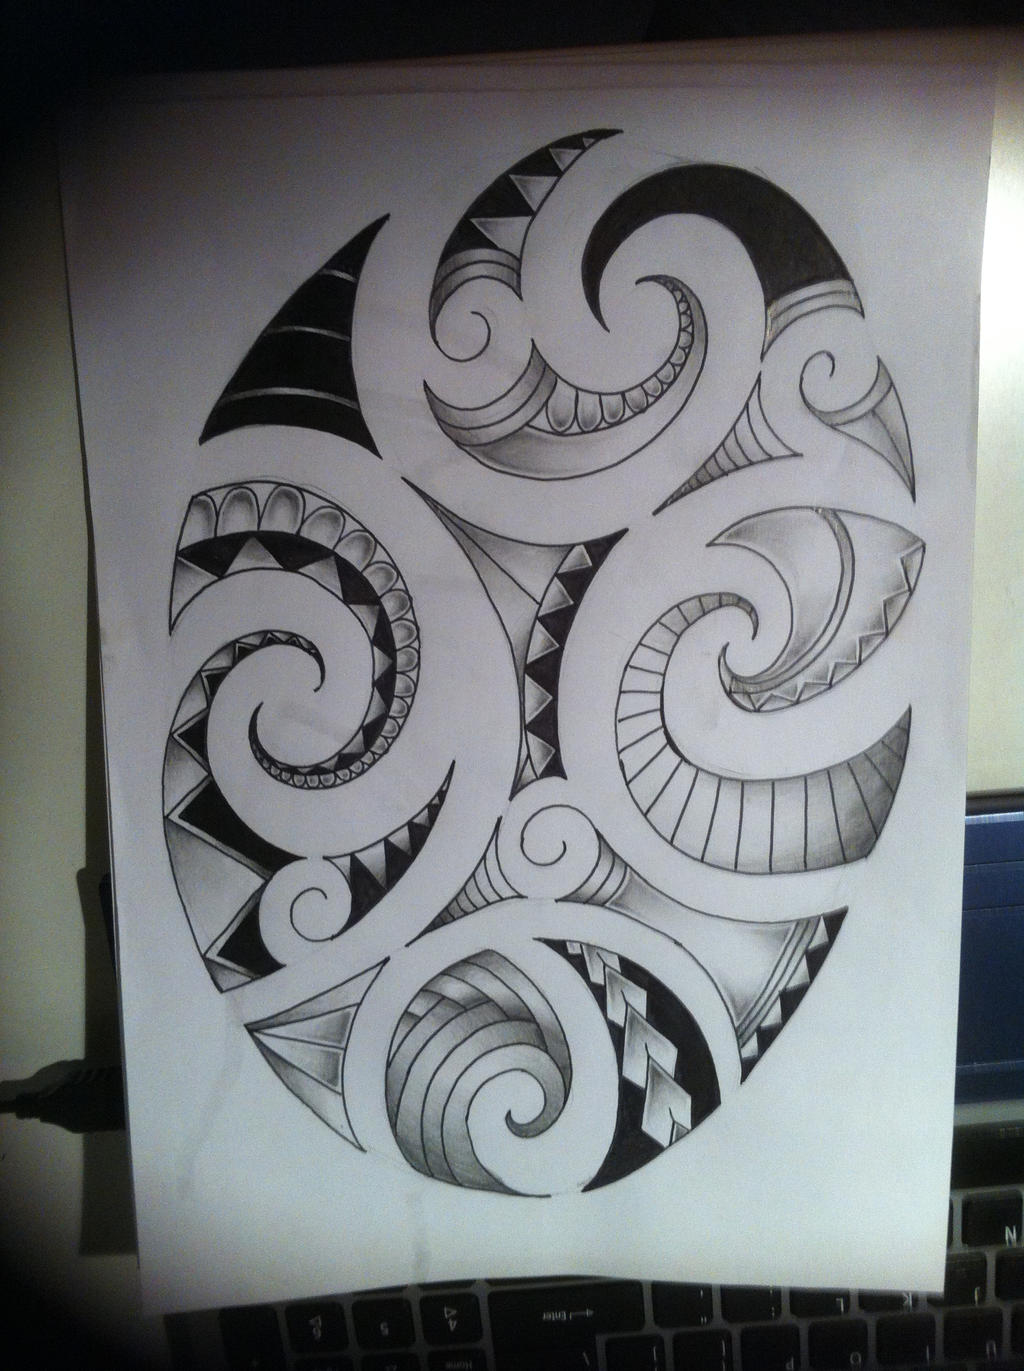 Maori Tattoo Shop: Maori Tattoo Design By Tattoosuzette On DeviantArt